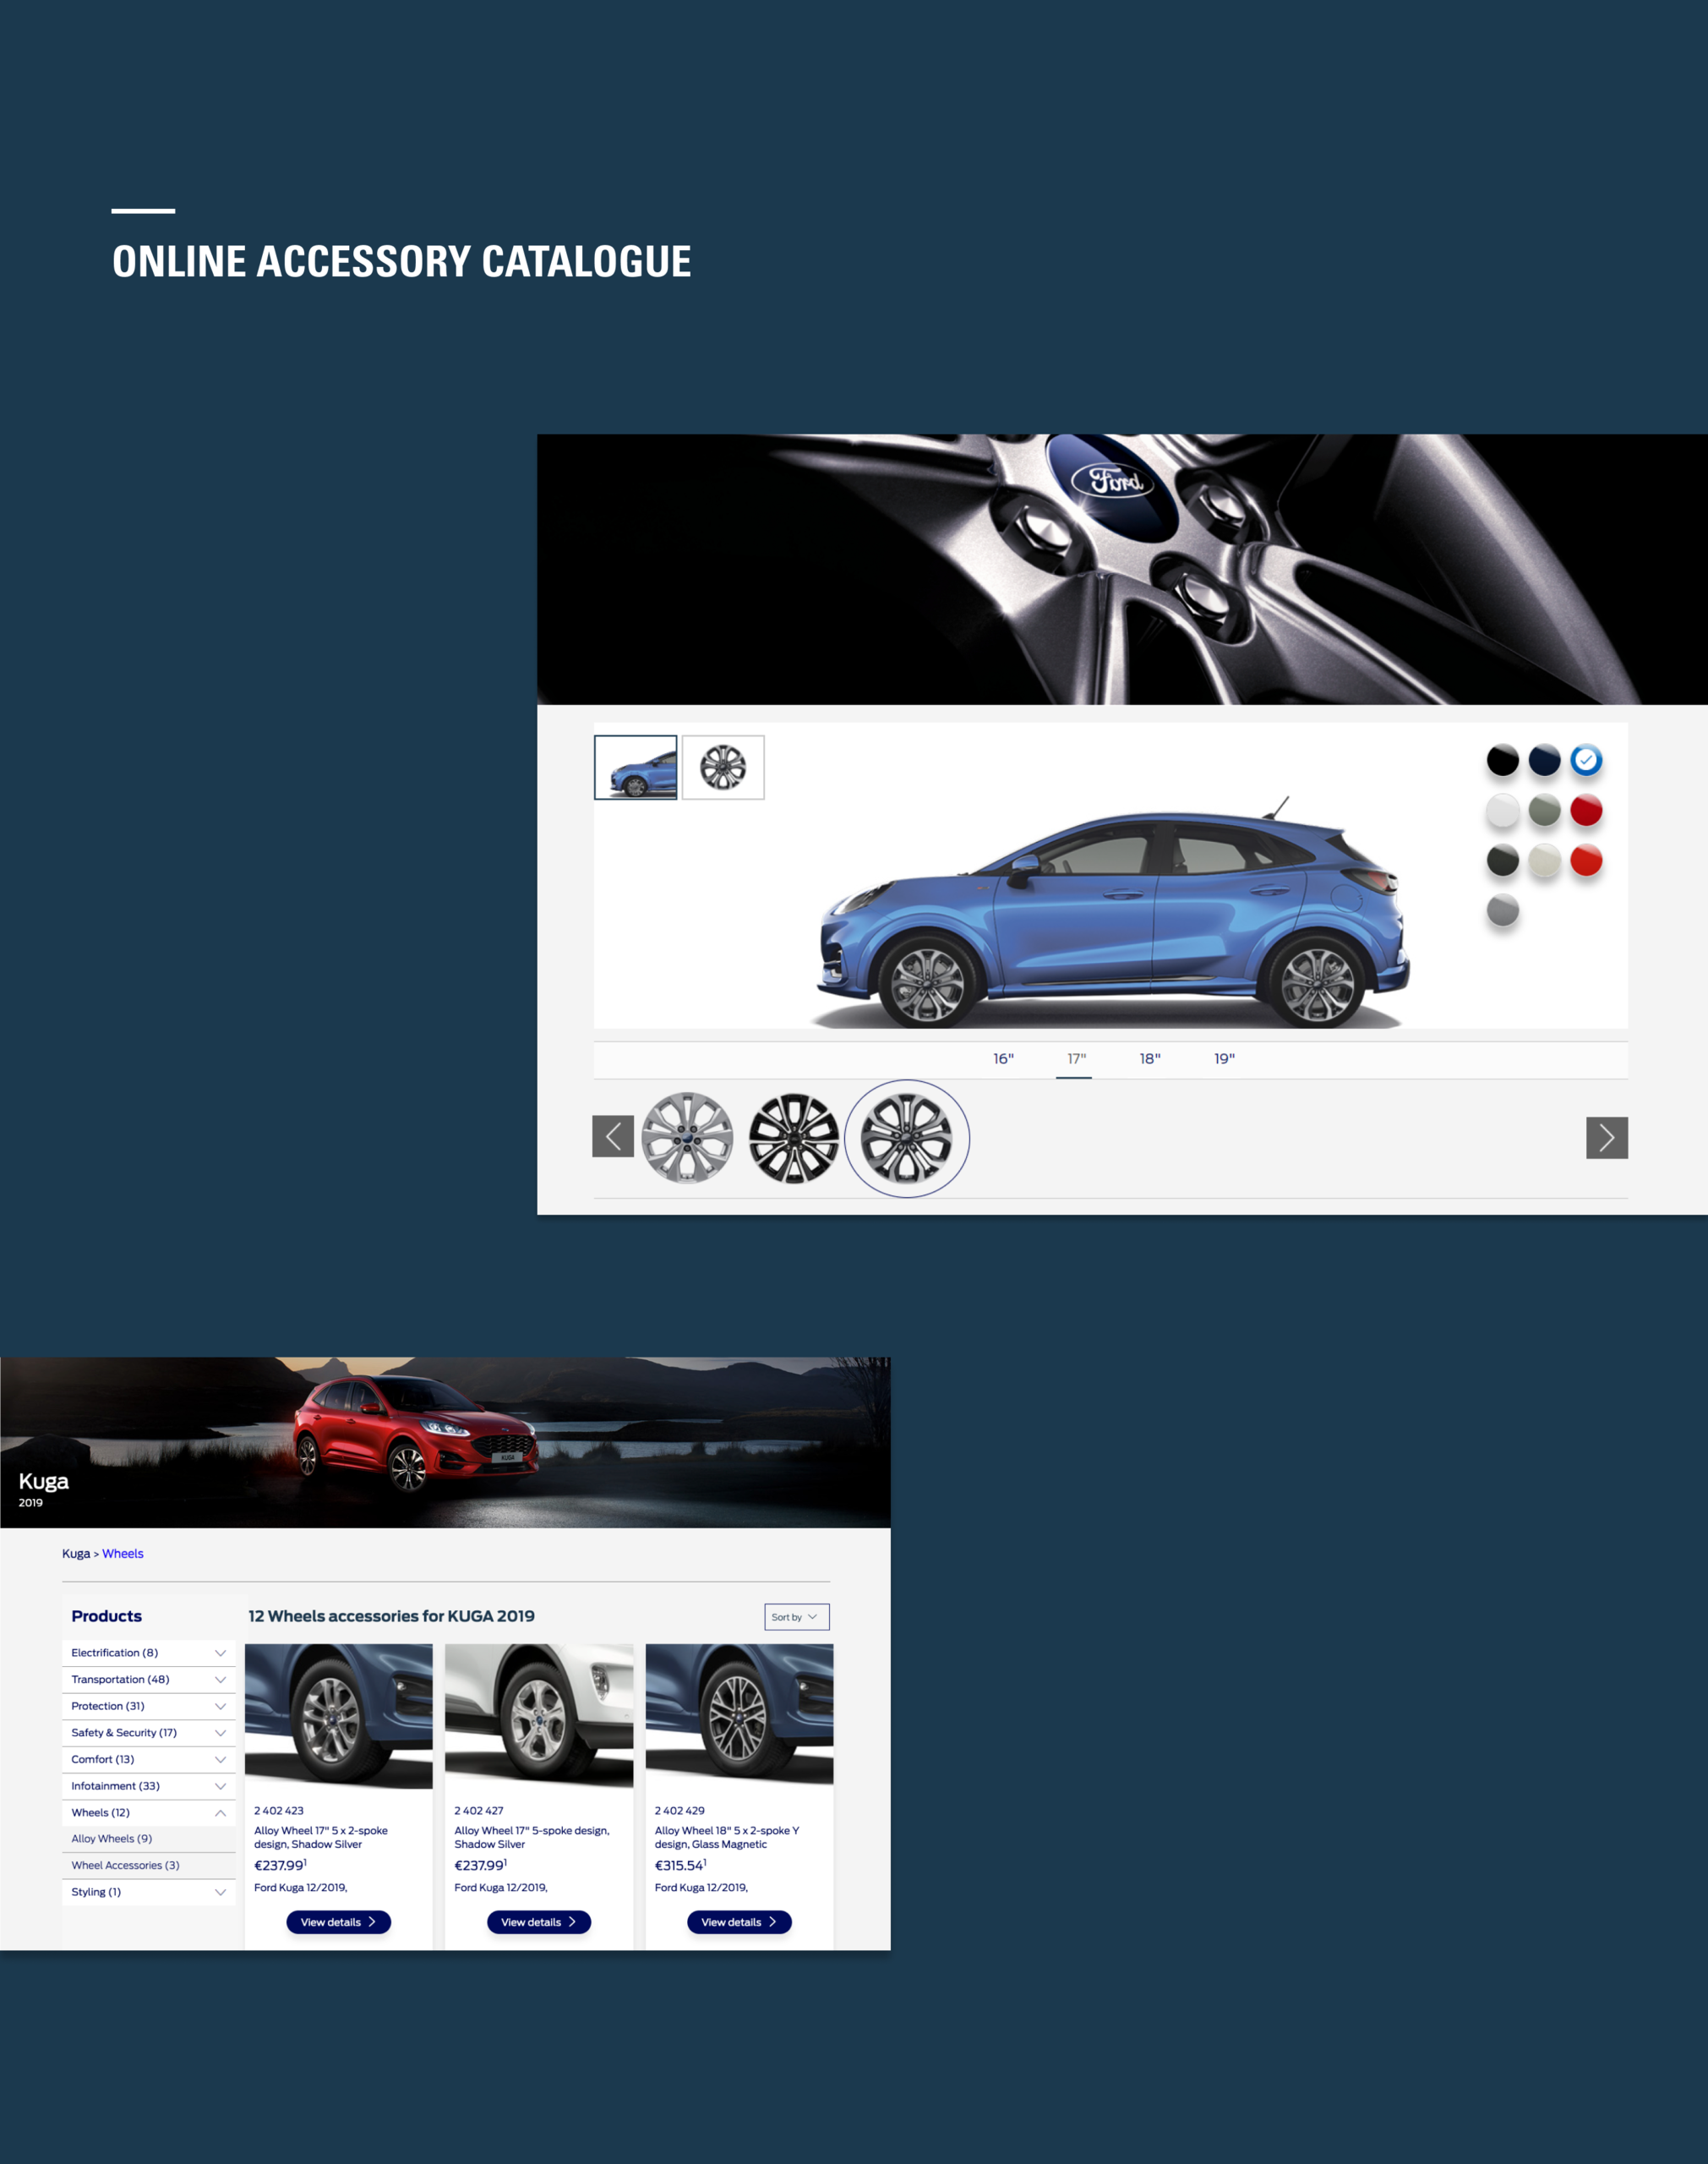 Ford Europe Online Accessory Catalogue Responsive Design